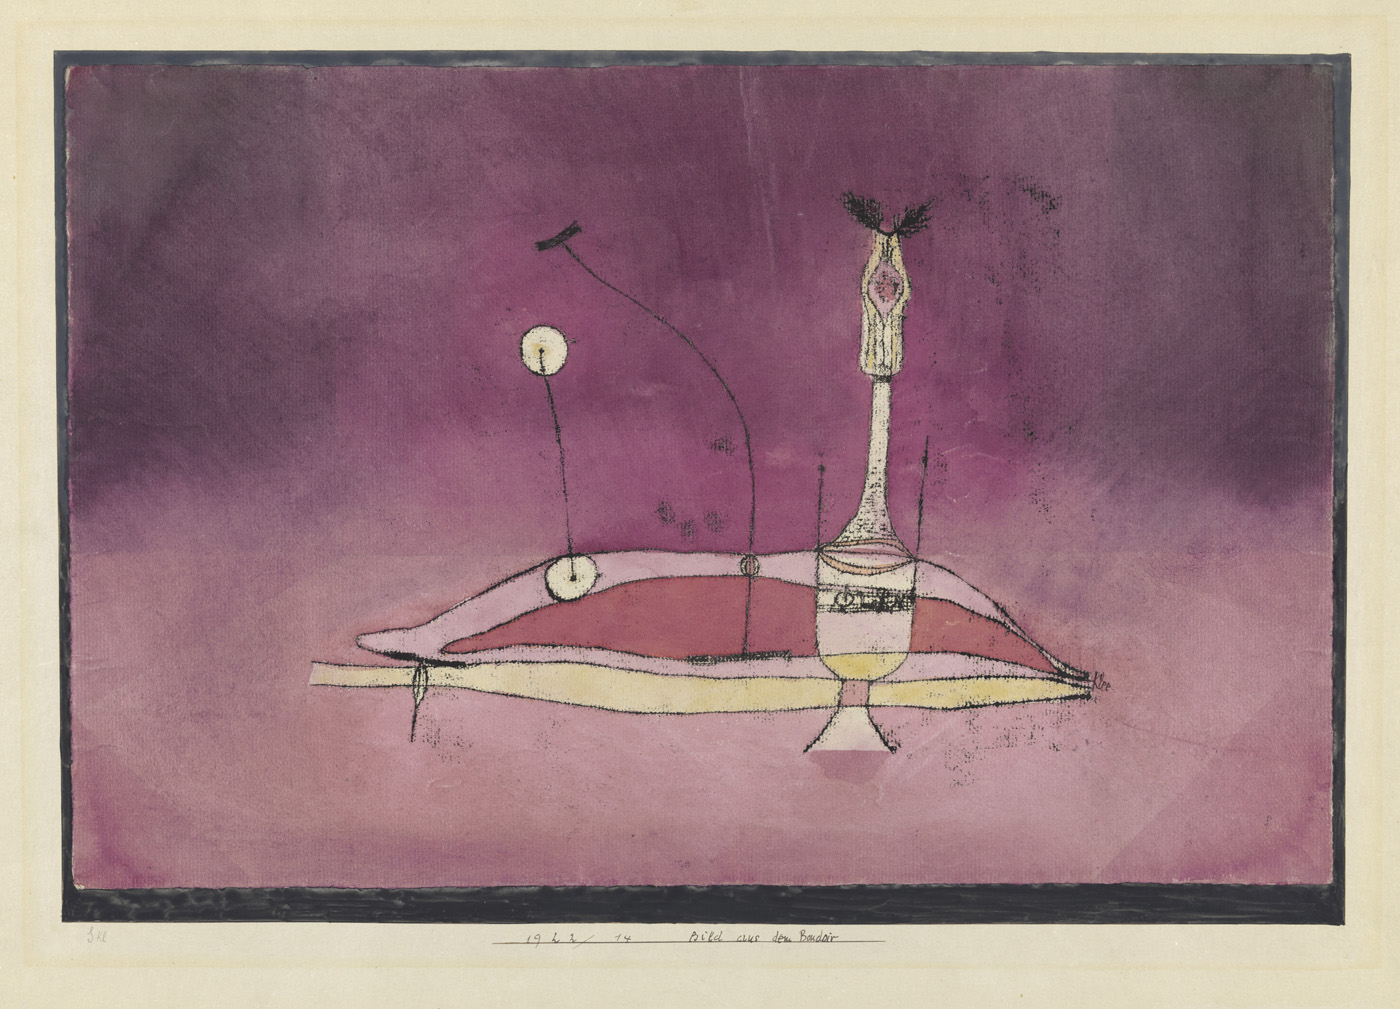 "Paul Klee, ""Bild aus dem Boudoir Image tirée du boudoir"" (1922), copy in oil and watercolor on paper on card (courtesy Zentrum Paul Klee, Berne)"